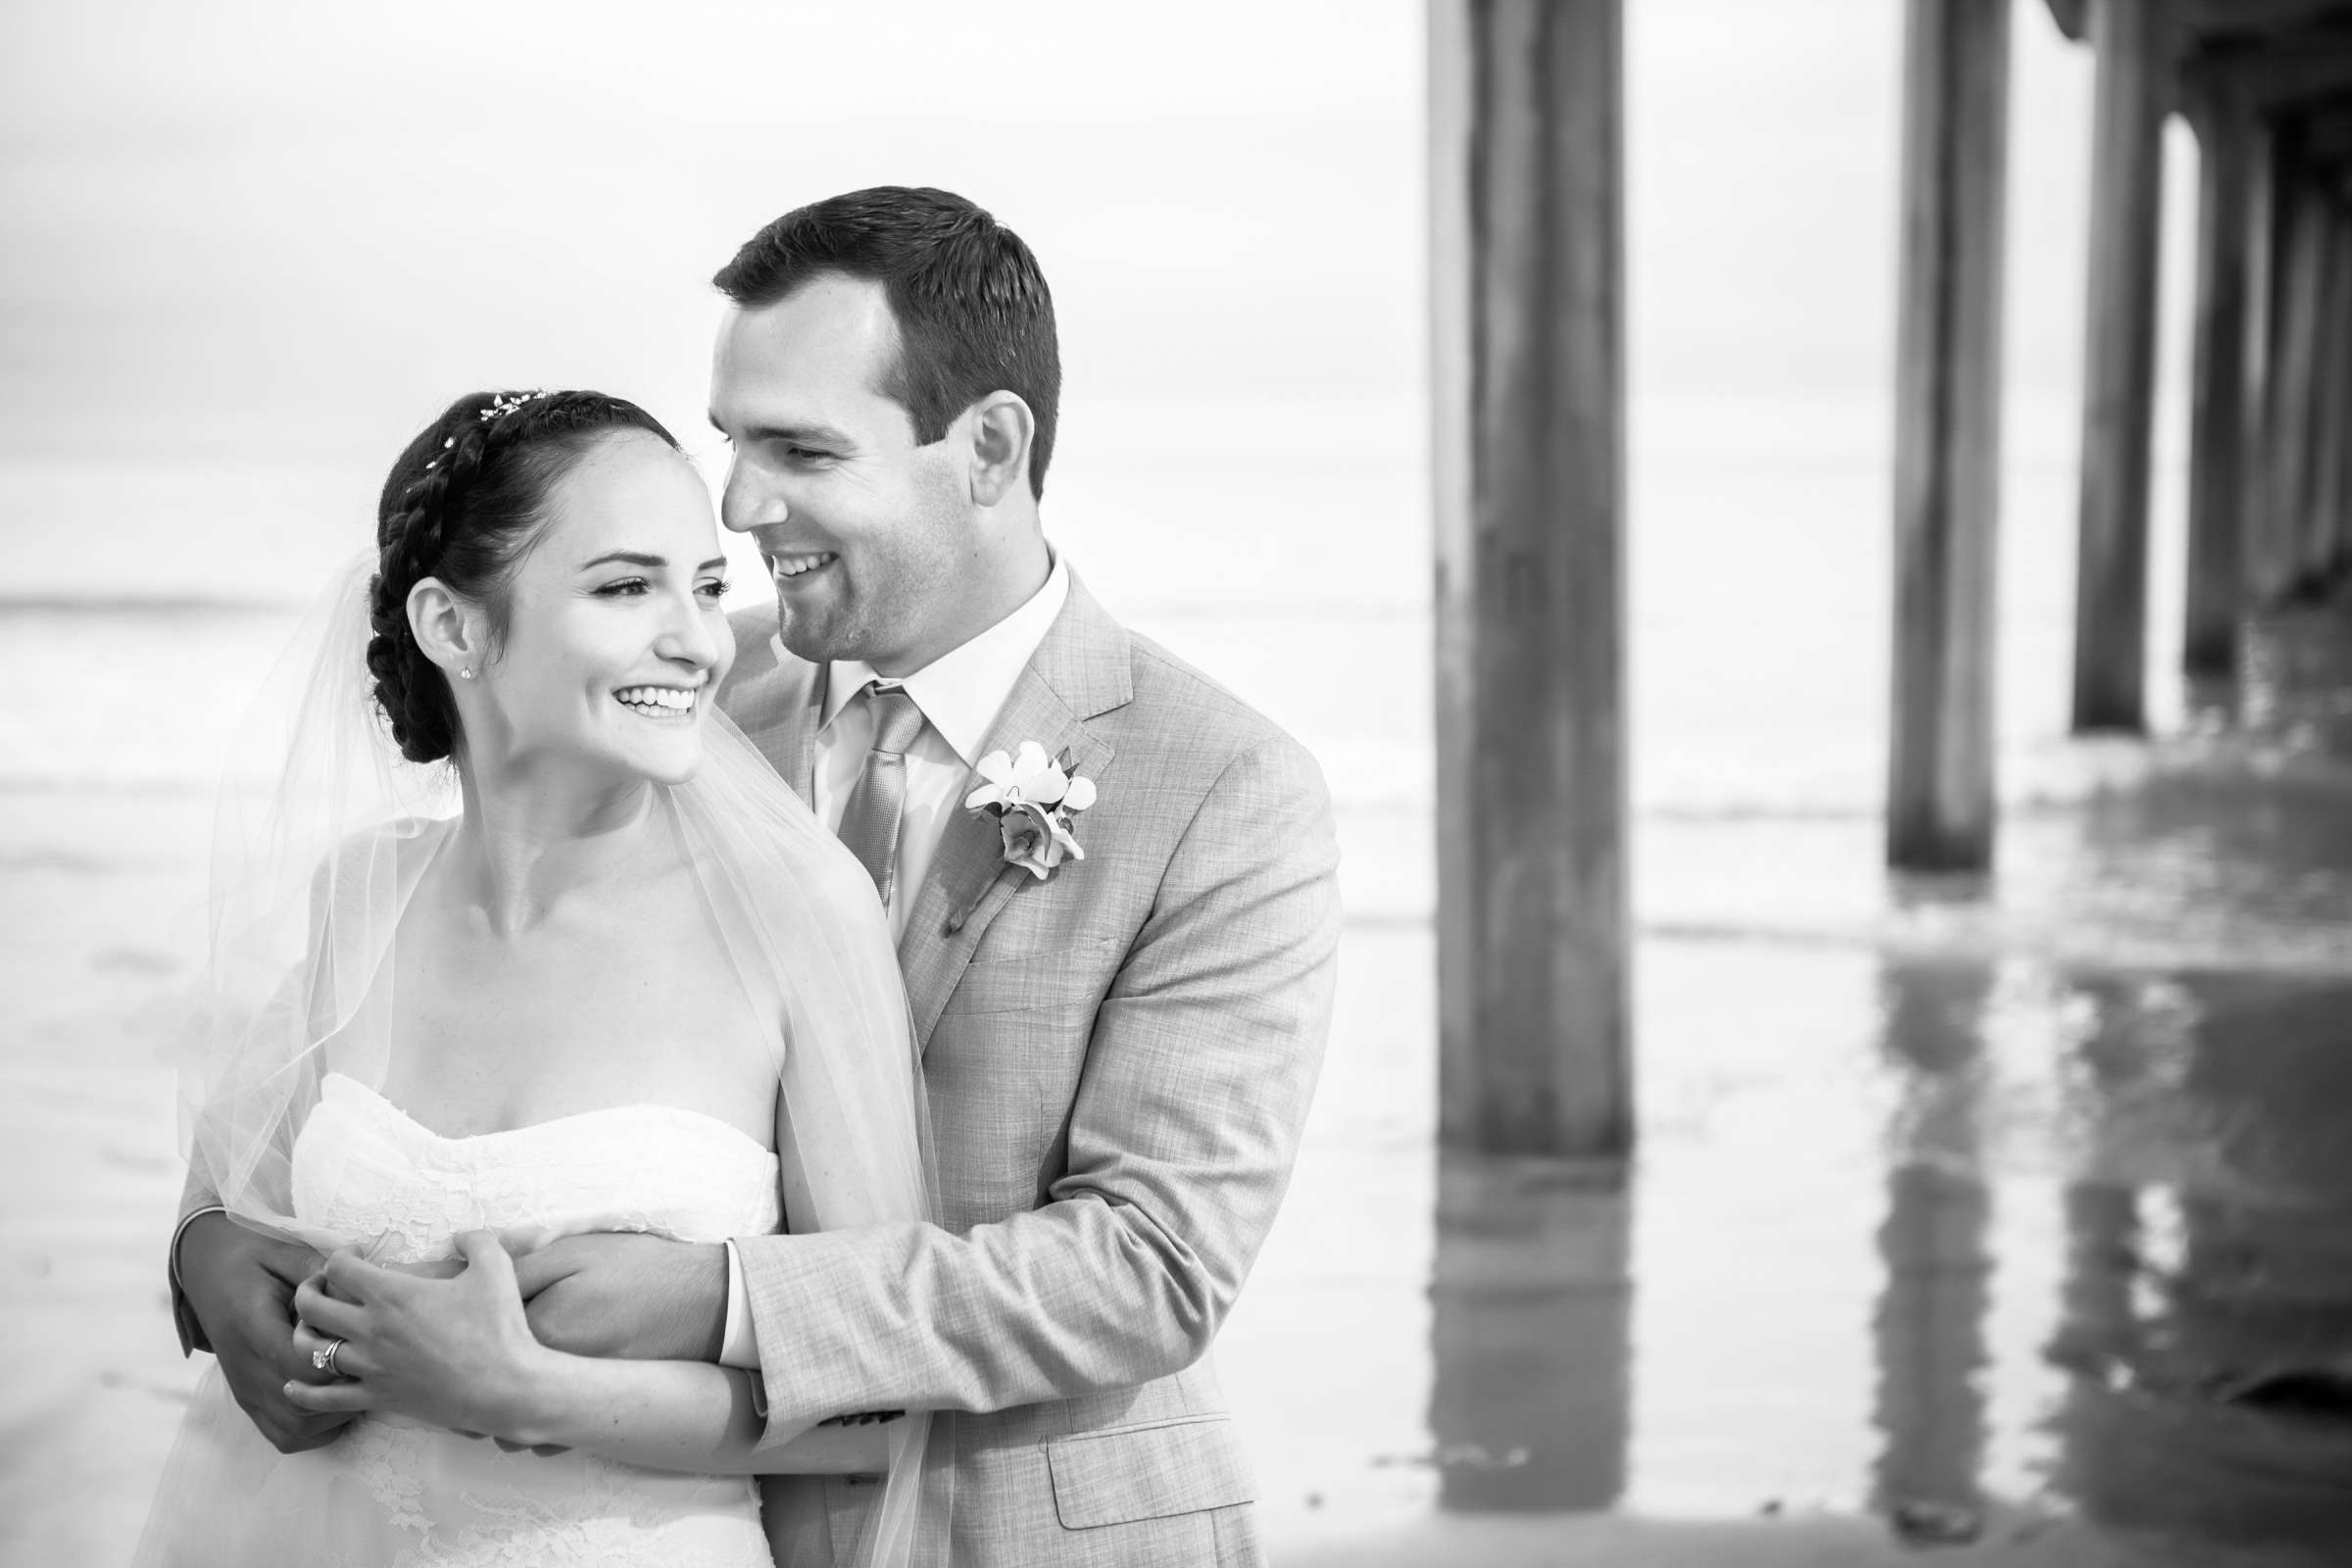 Scripps Seaside Forum Wedding coordinated by Francine Ribeau Events, Shaina and Christopher Wedding Photo #5 by True Photography